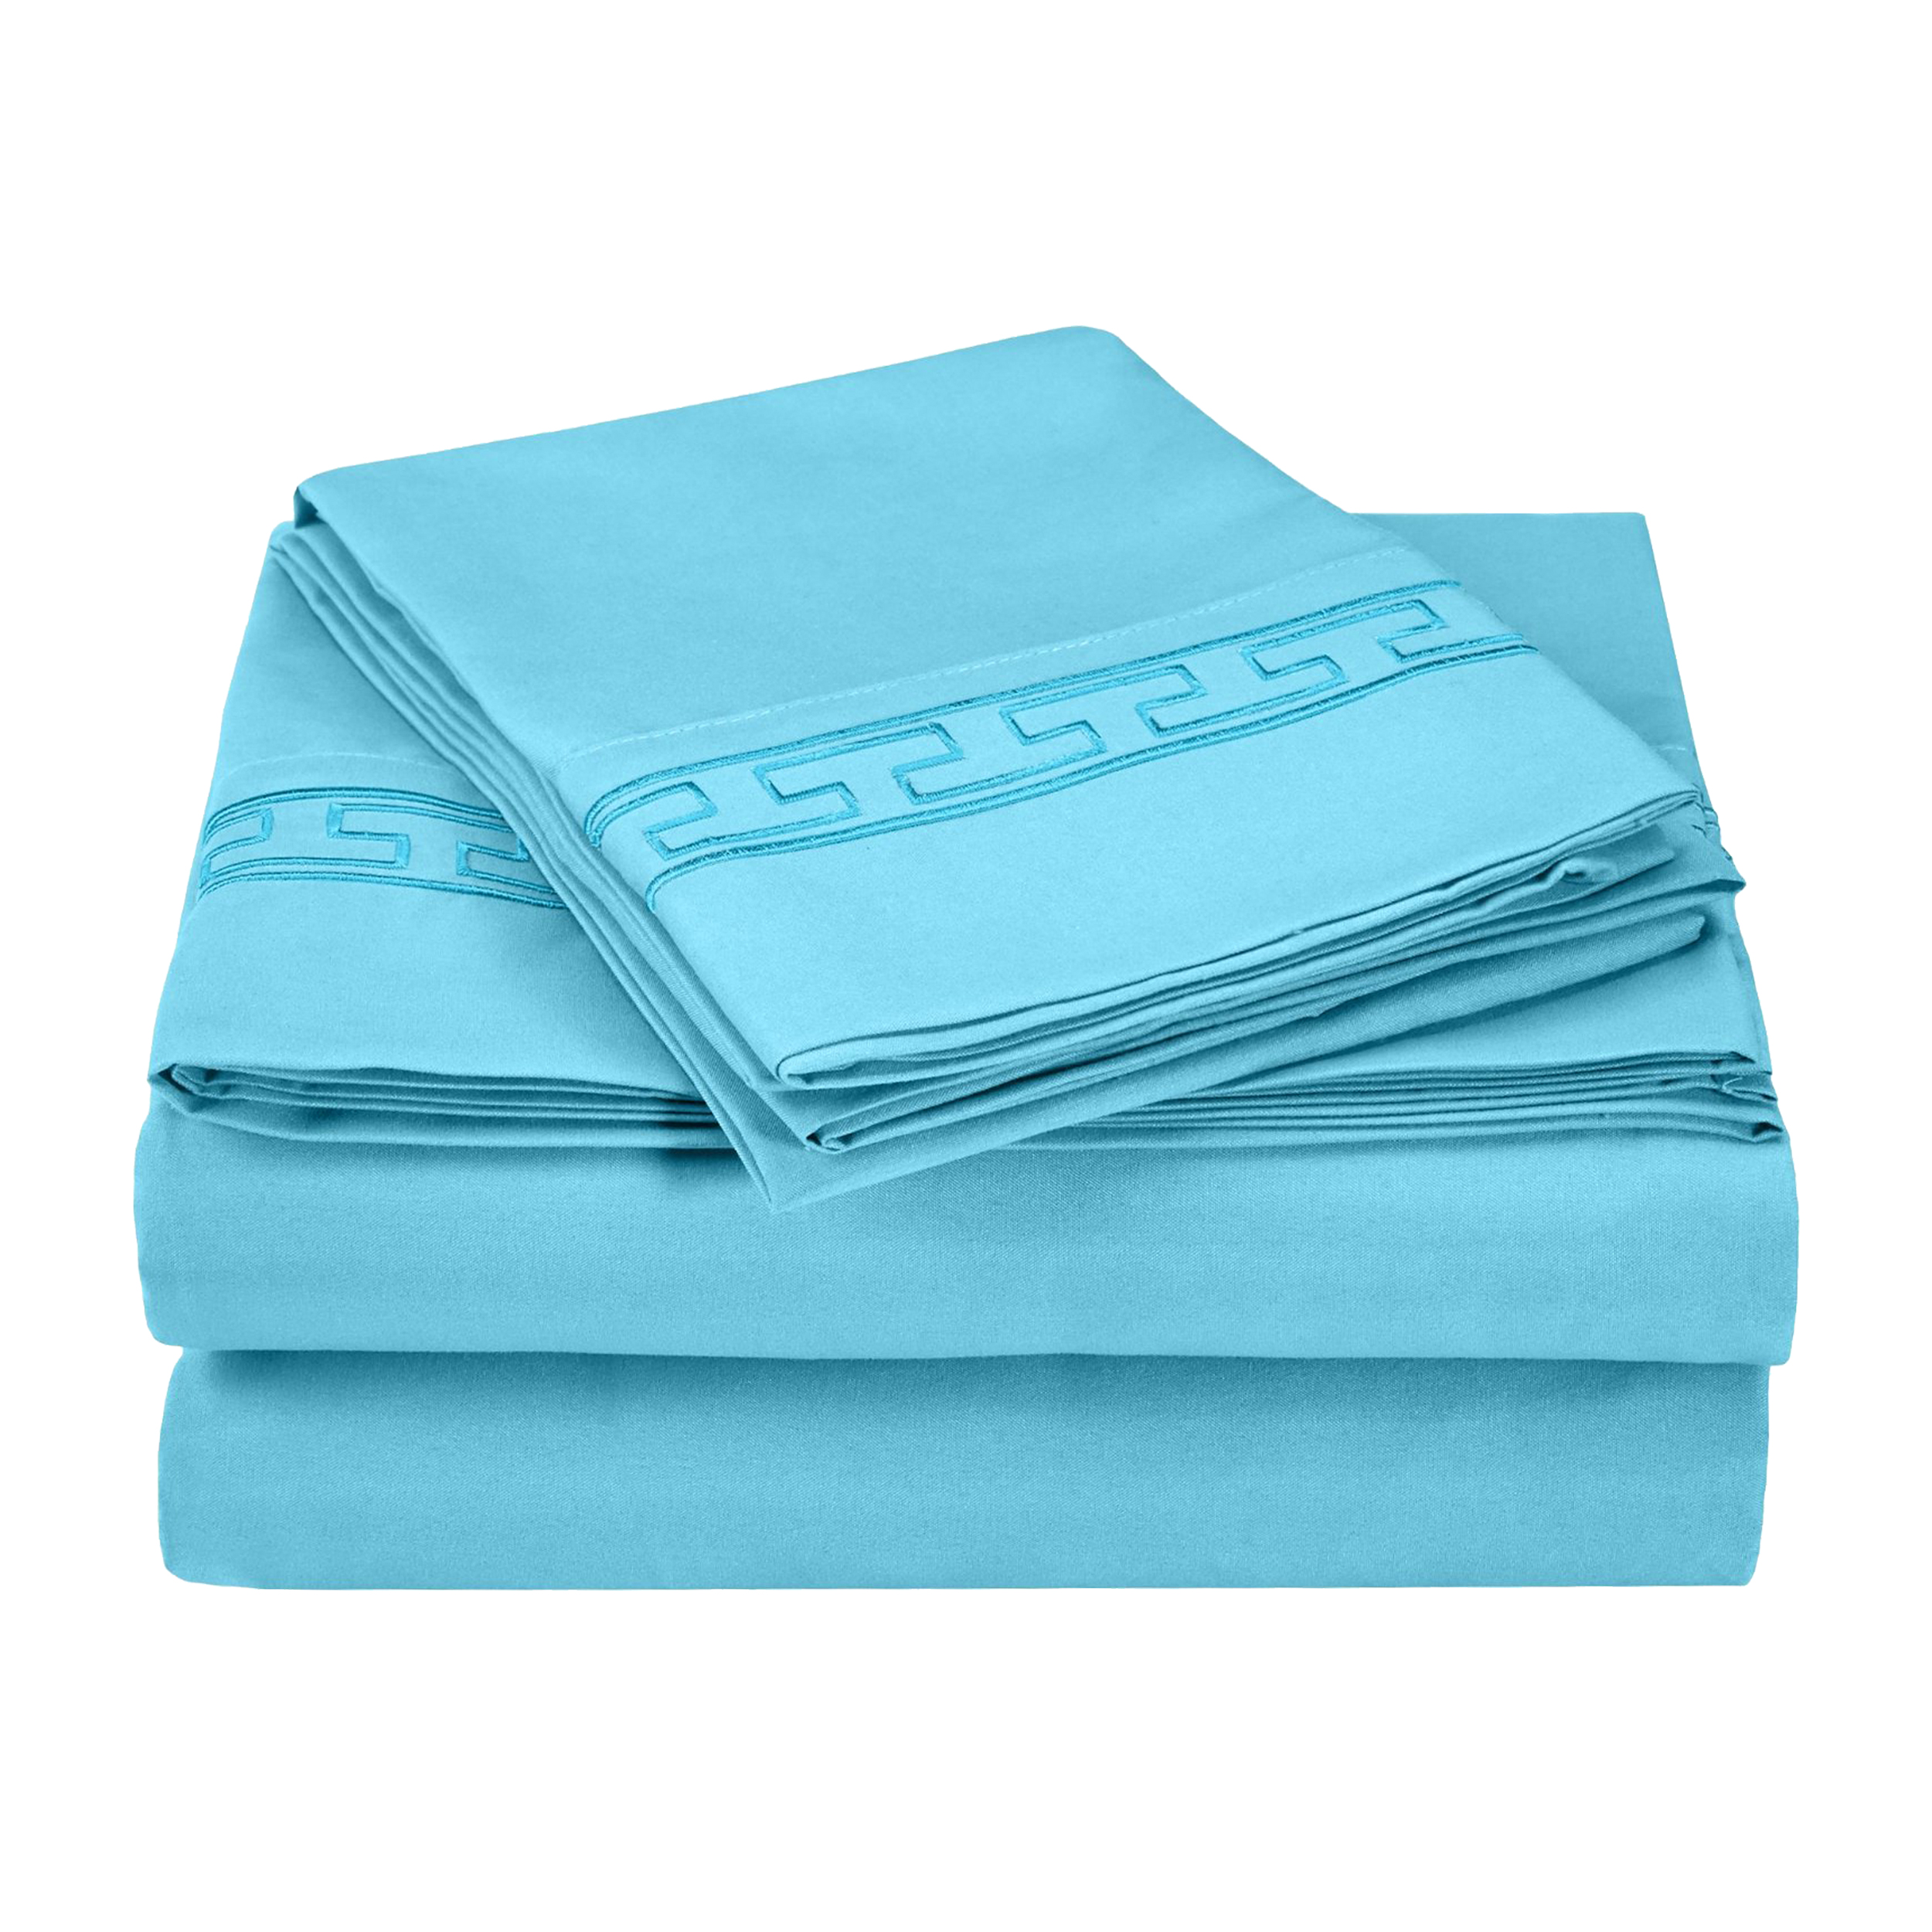 Superior Light Weight and Super Soft Brushed Microfiber, Wrinkle Resistant Sheet Set with Regal Embroidery